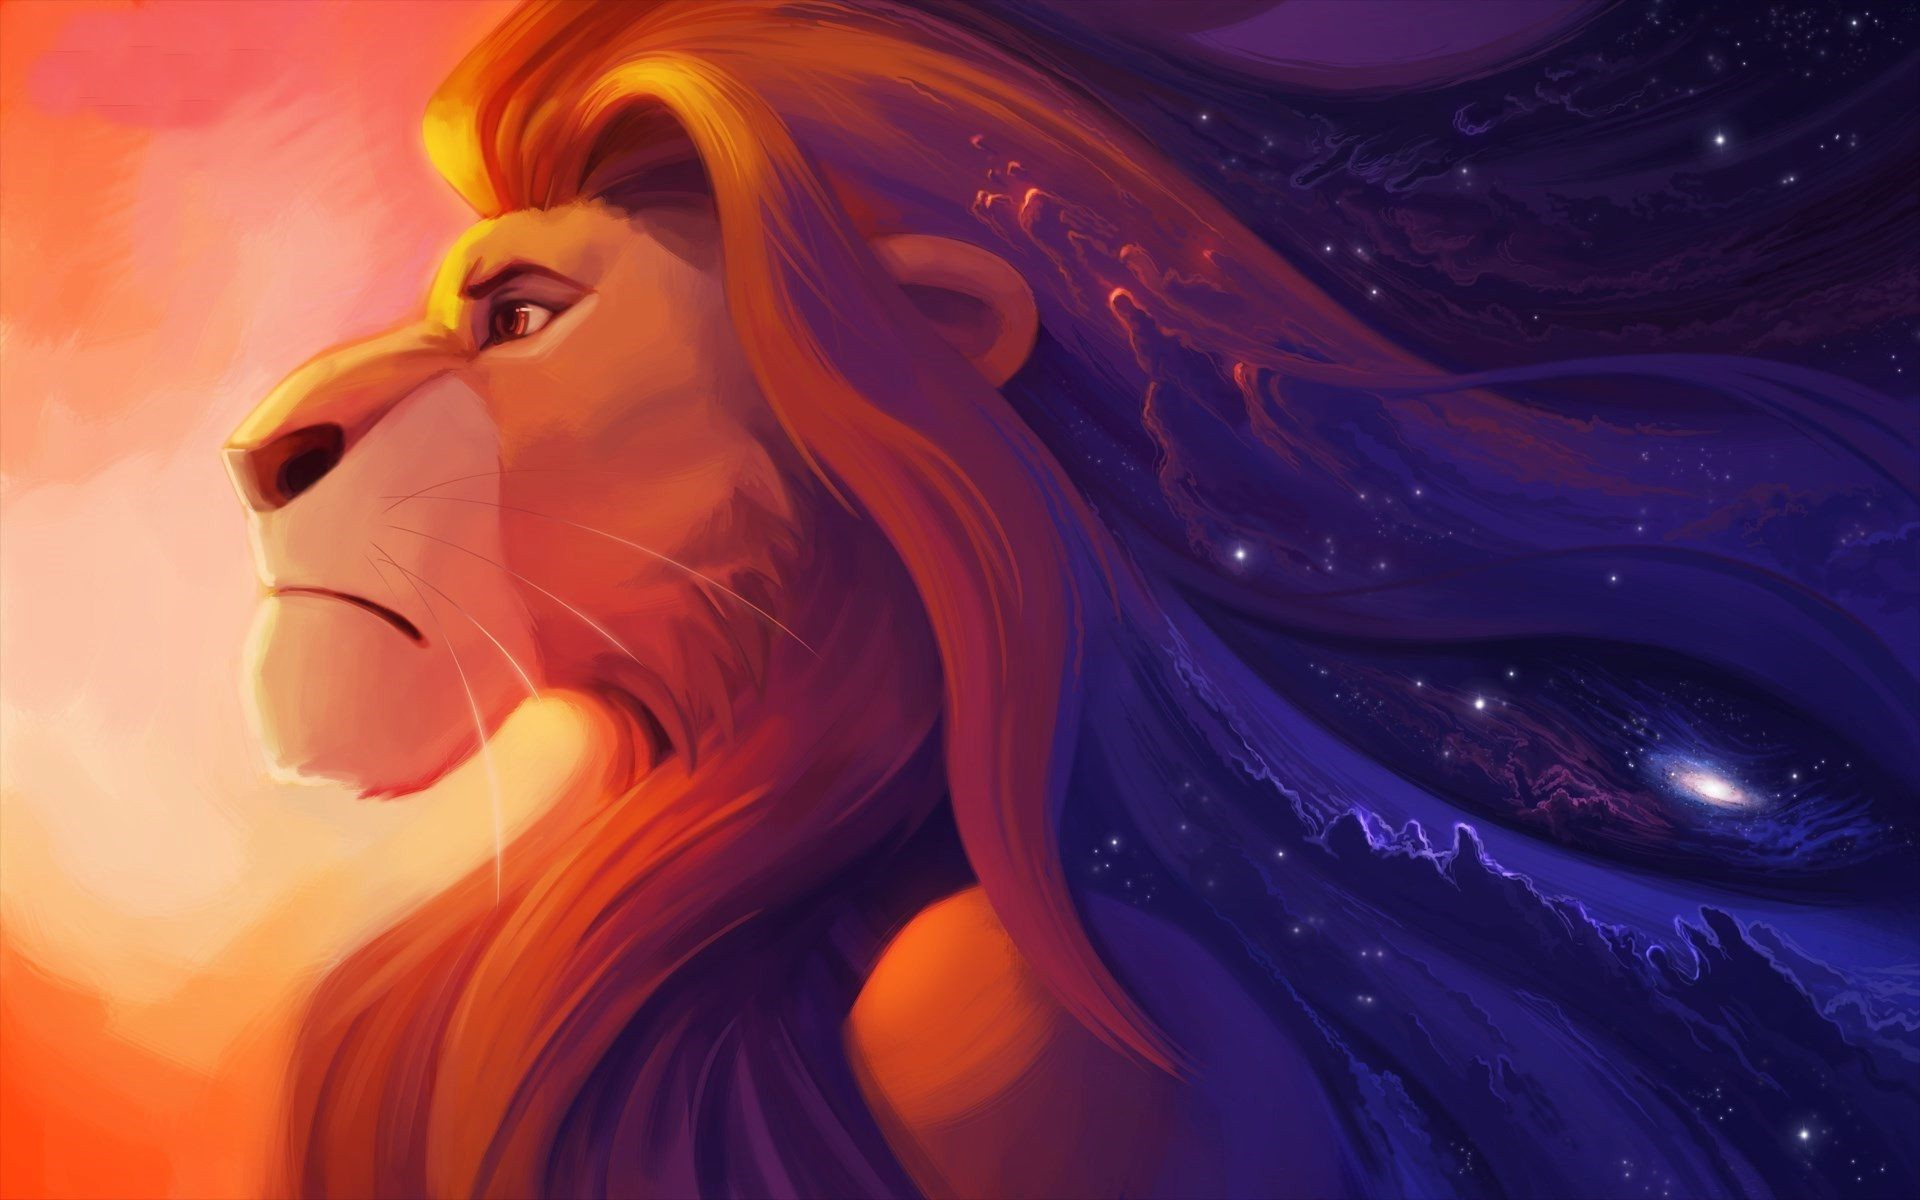 Lion King wallpaper ·① Download free amazing HD wallpapers ...